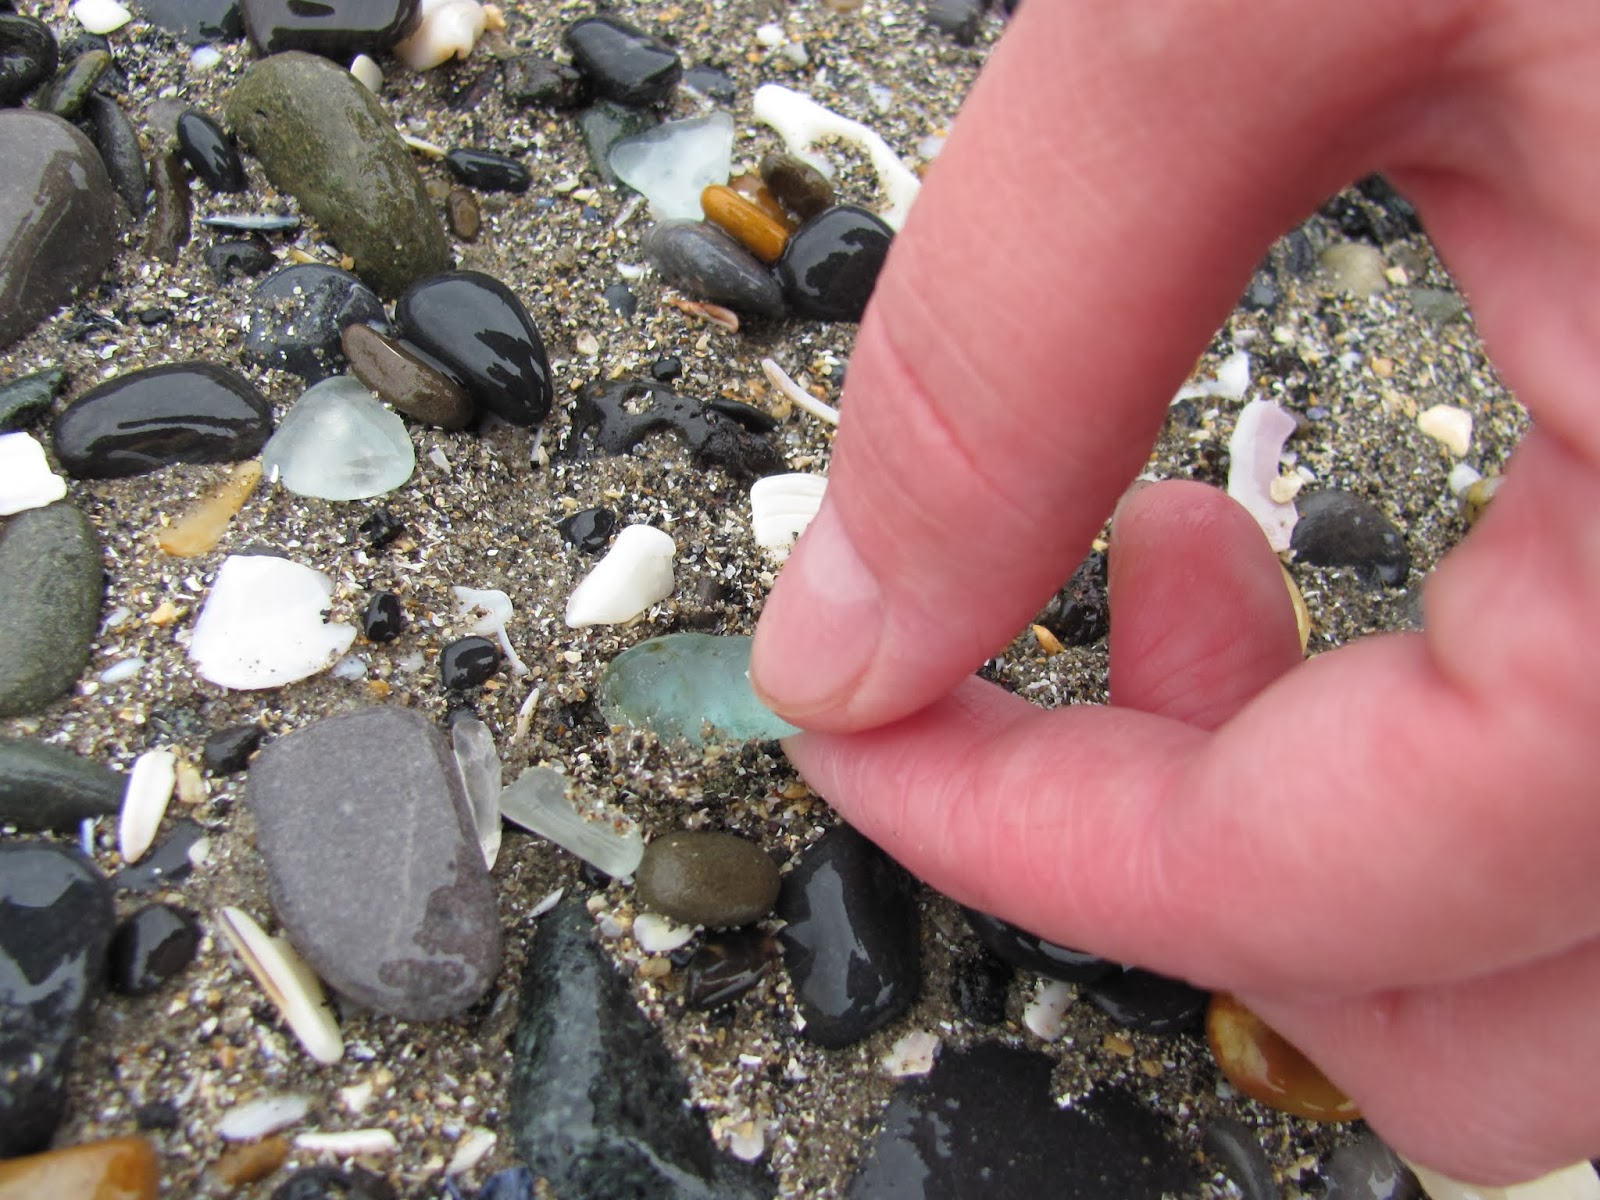 A hand collects a piece of sea glass from the rocks on the shore of Dublin Bay at Seapoint Beach, Dun Laoghaire, Co. Dublin, Ireland